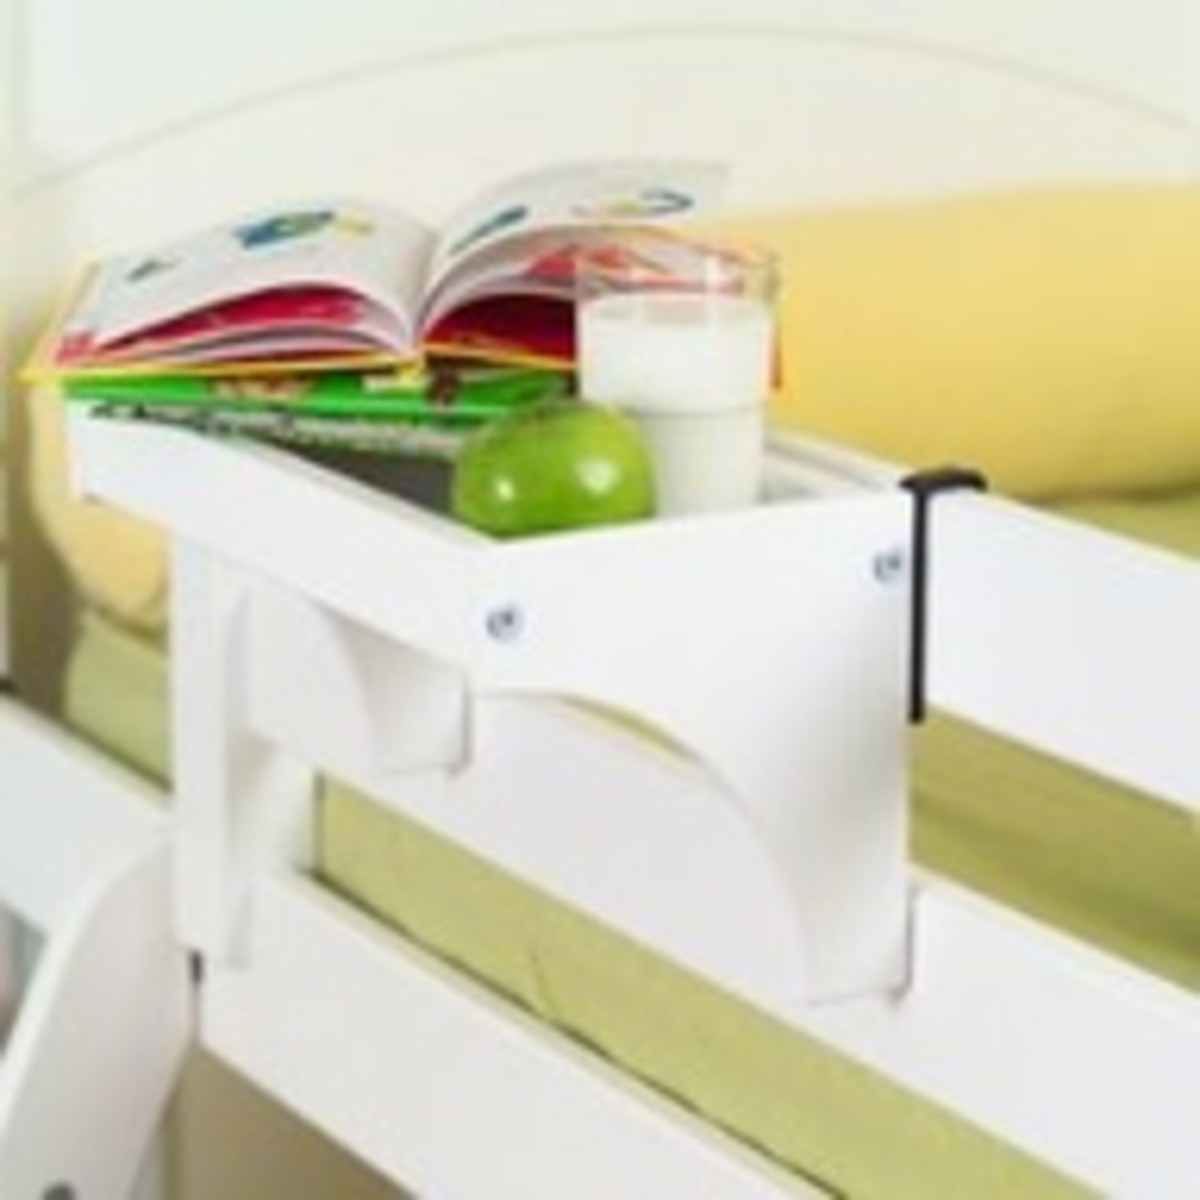 A cute example of a top bunk tray